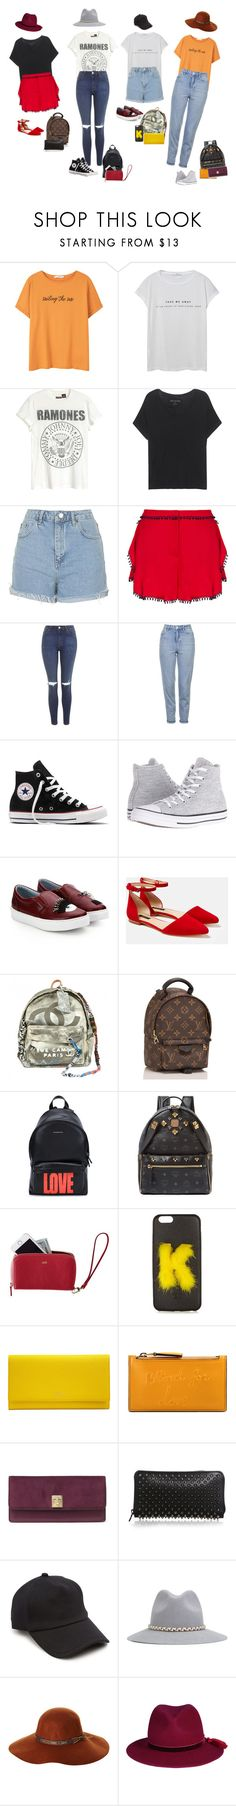 """""""4 side chick"""" by audrey-balt ❤ liked on Polyvore featuring MANGO, True Religion, Topshop, Zeynep Tosun, Converse, Chiara Ferragni, Lafayette 148 New York, Chanel, Louis Vuitton and Givenchy"""